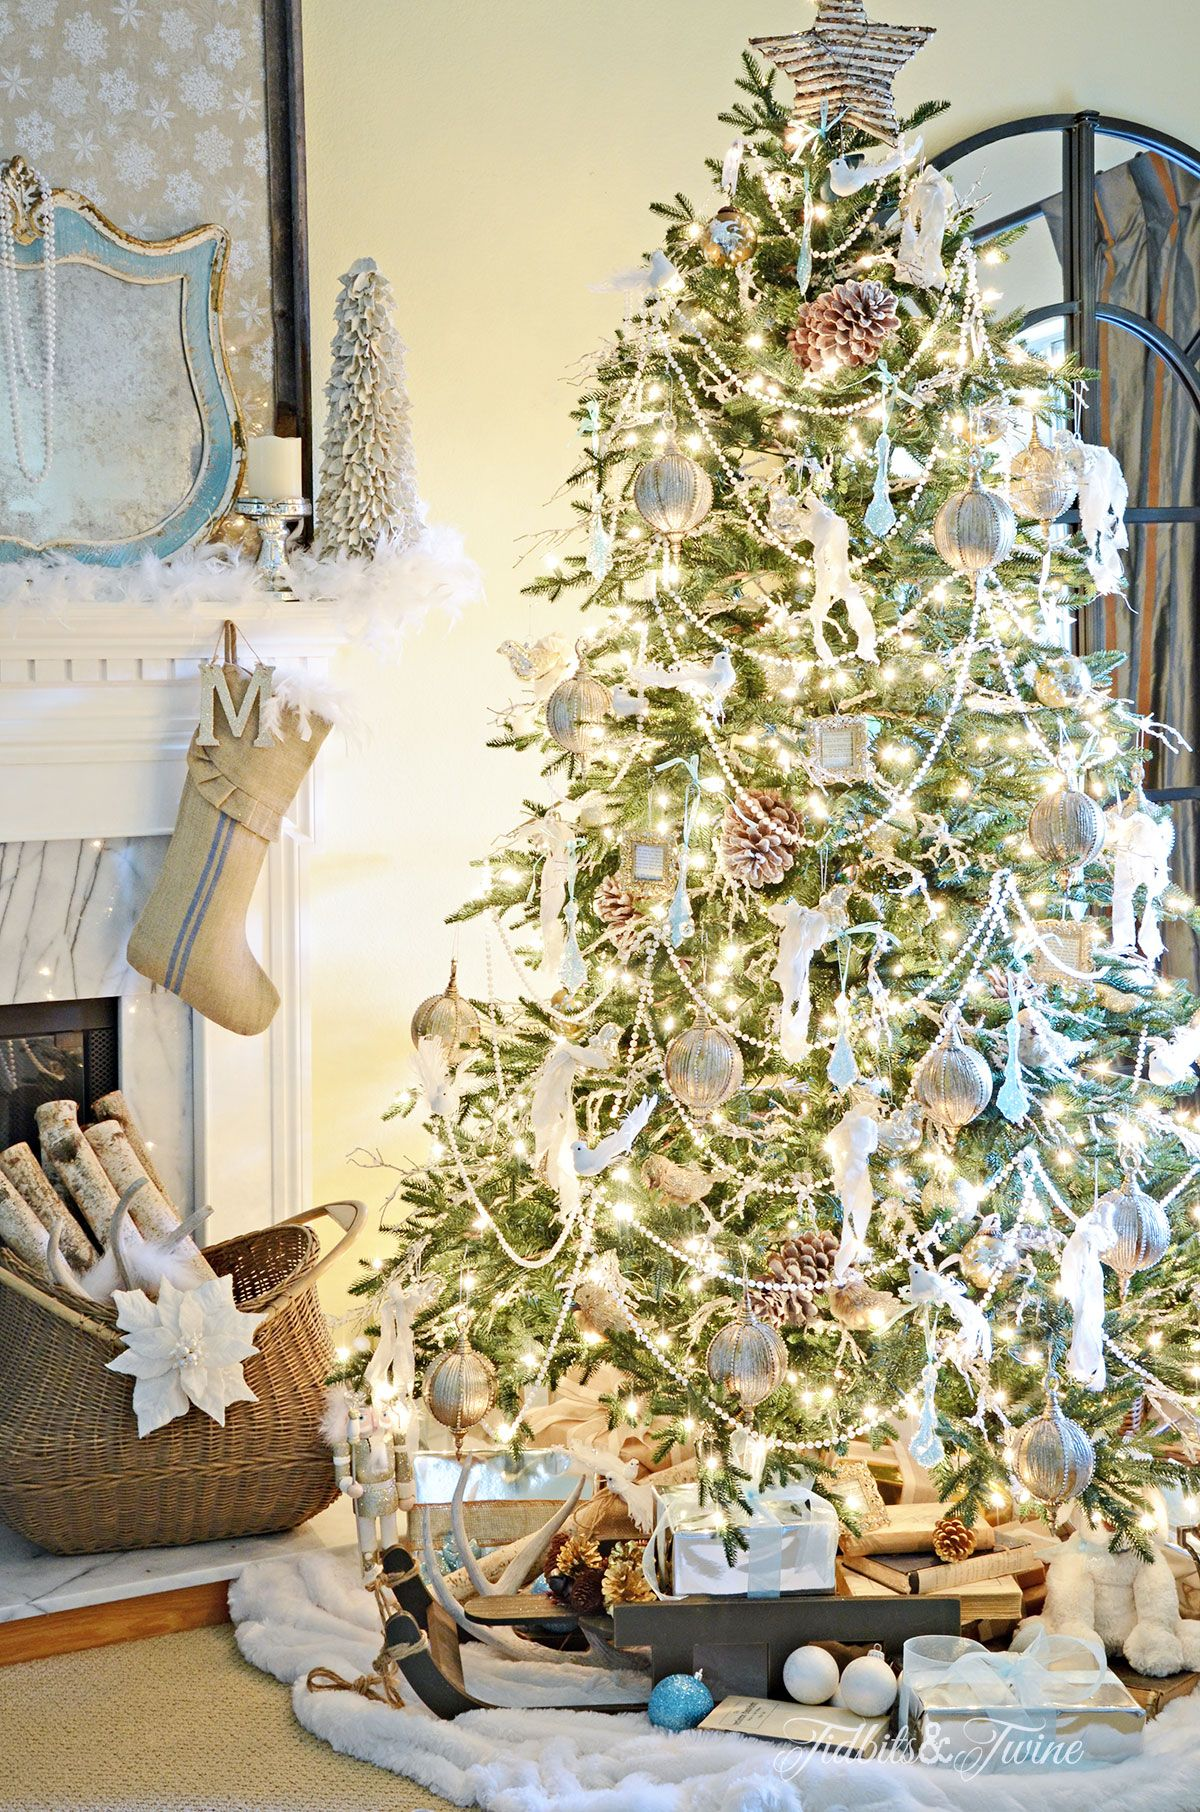 Tips for Decorating a Christmas Tree | Christmas trees | Pinterest ...